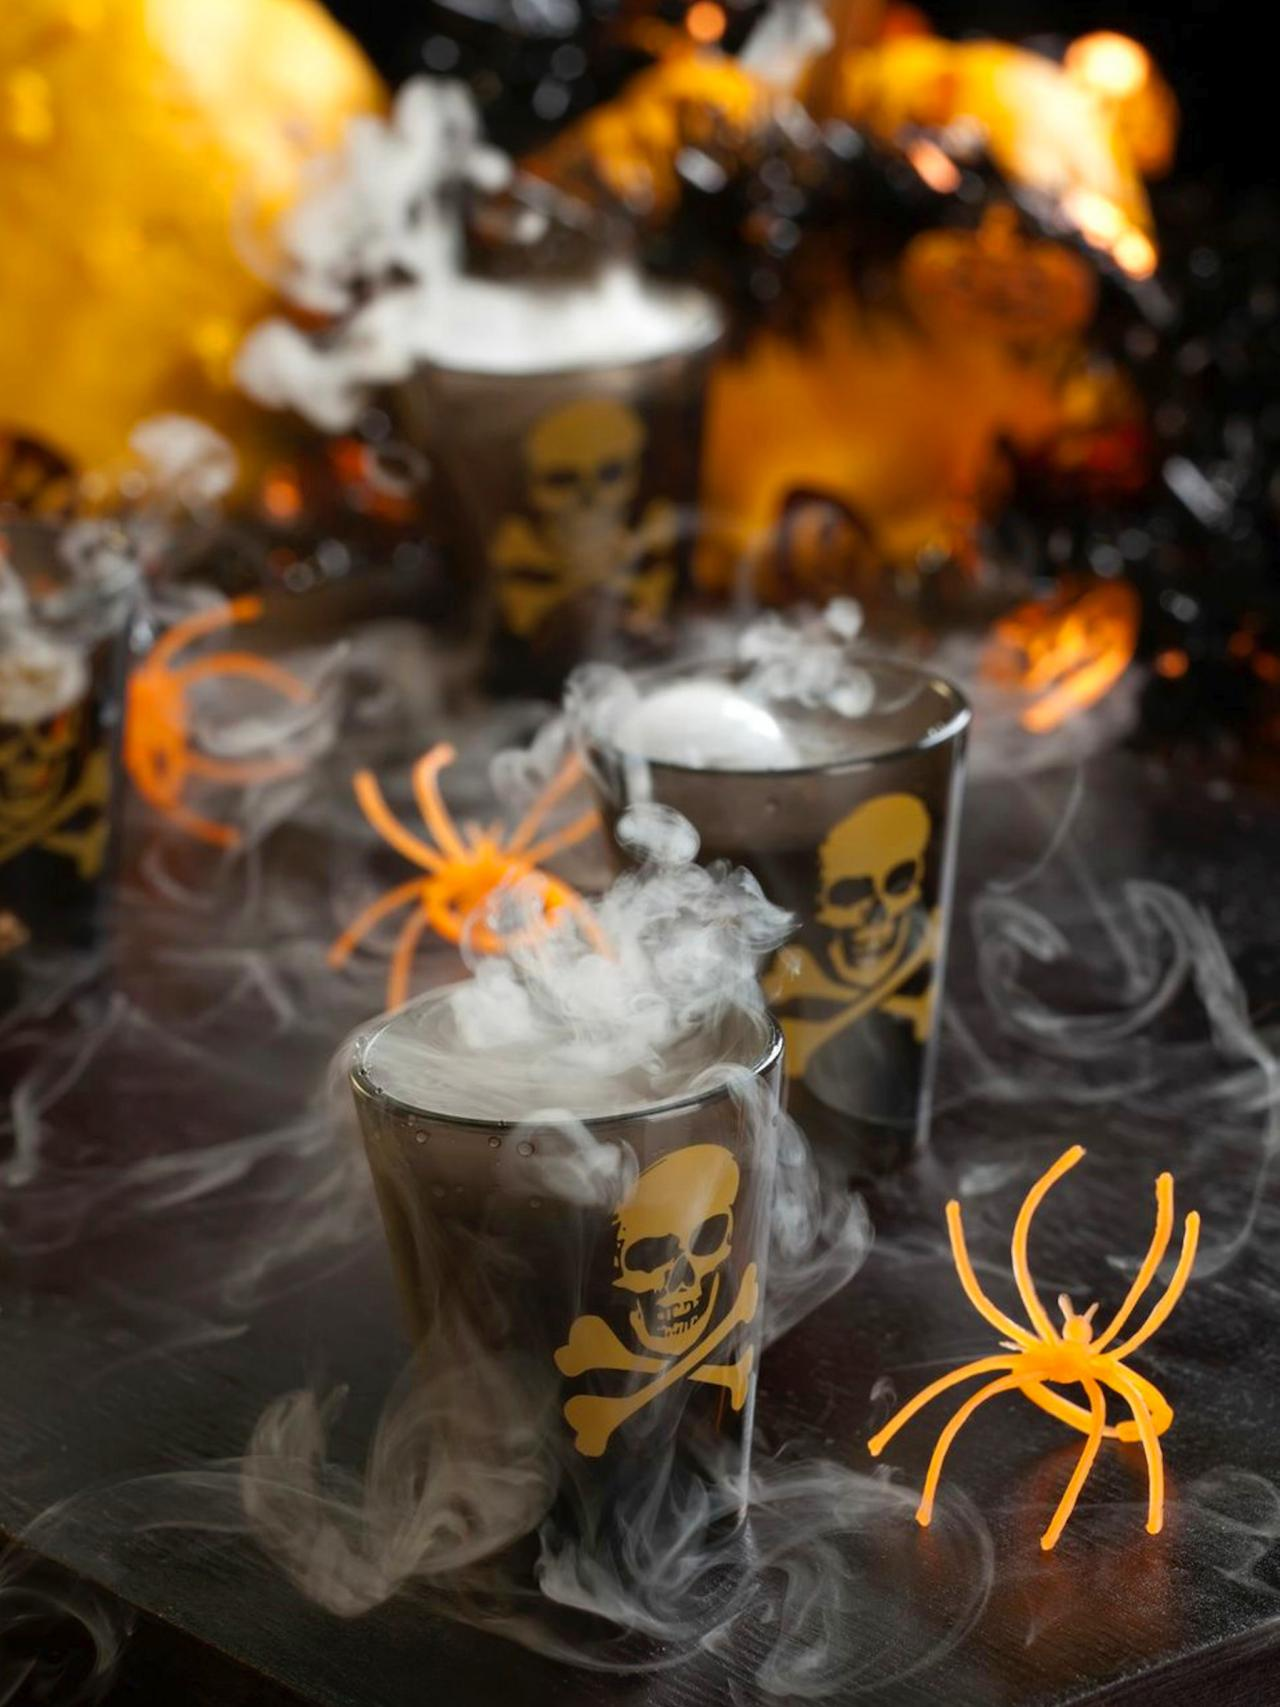 Original_Andrea-Correale-Halloween-Cocktails-Smoking-Skulls_v.jpg.rend_.hgtvcom.1280.1707.jpeg